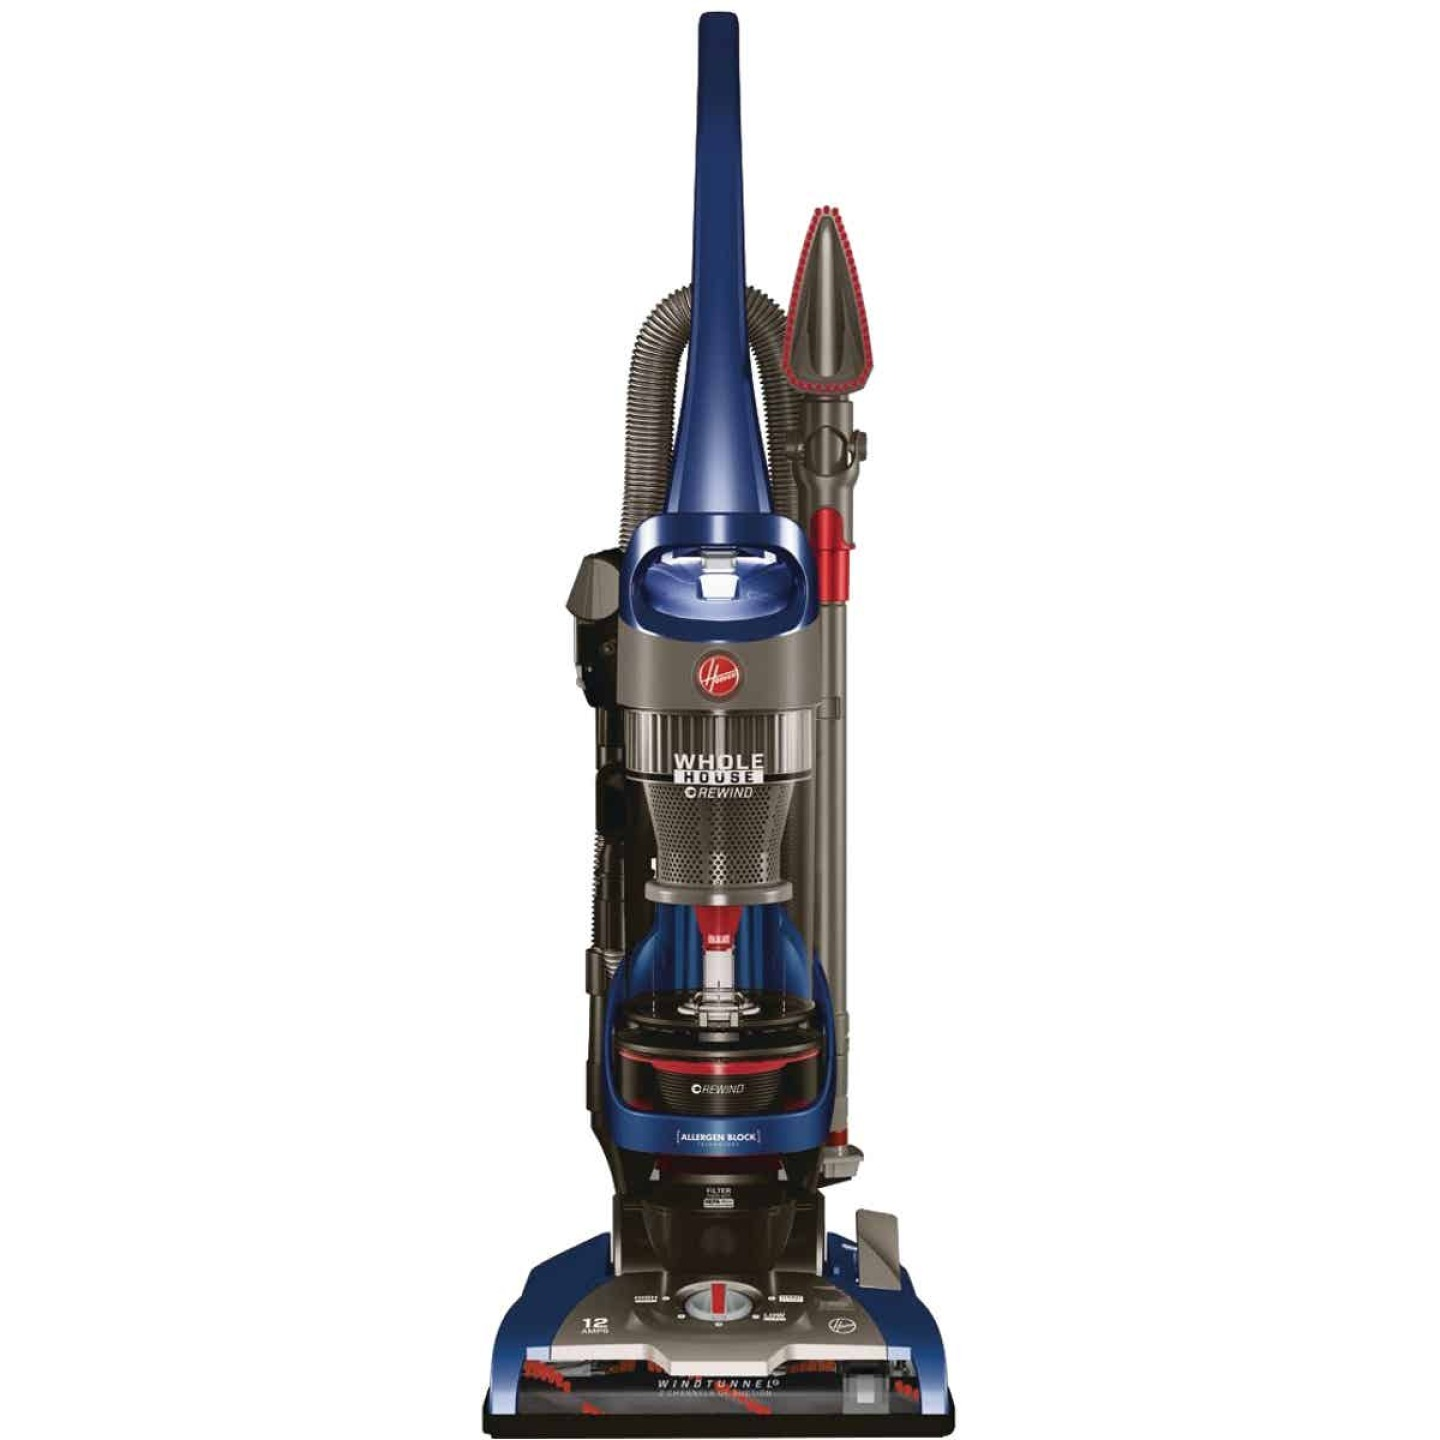 Hoover WindTunnel 2 Whole House Bagless Rewind Upright Vacuum Cleaner Image 1